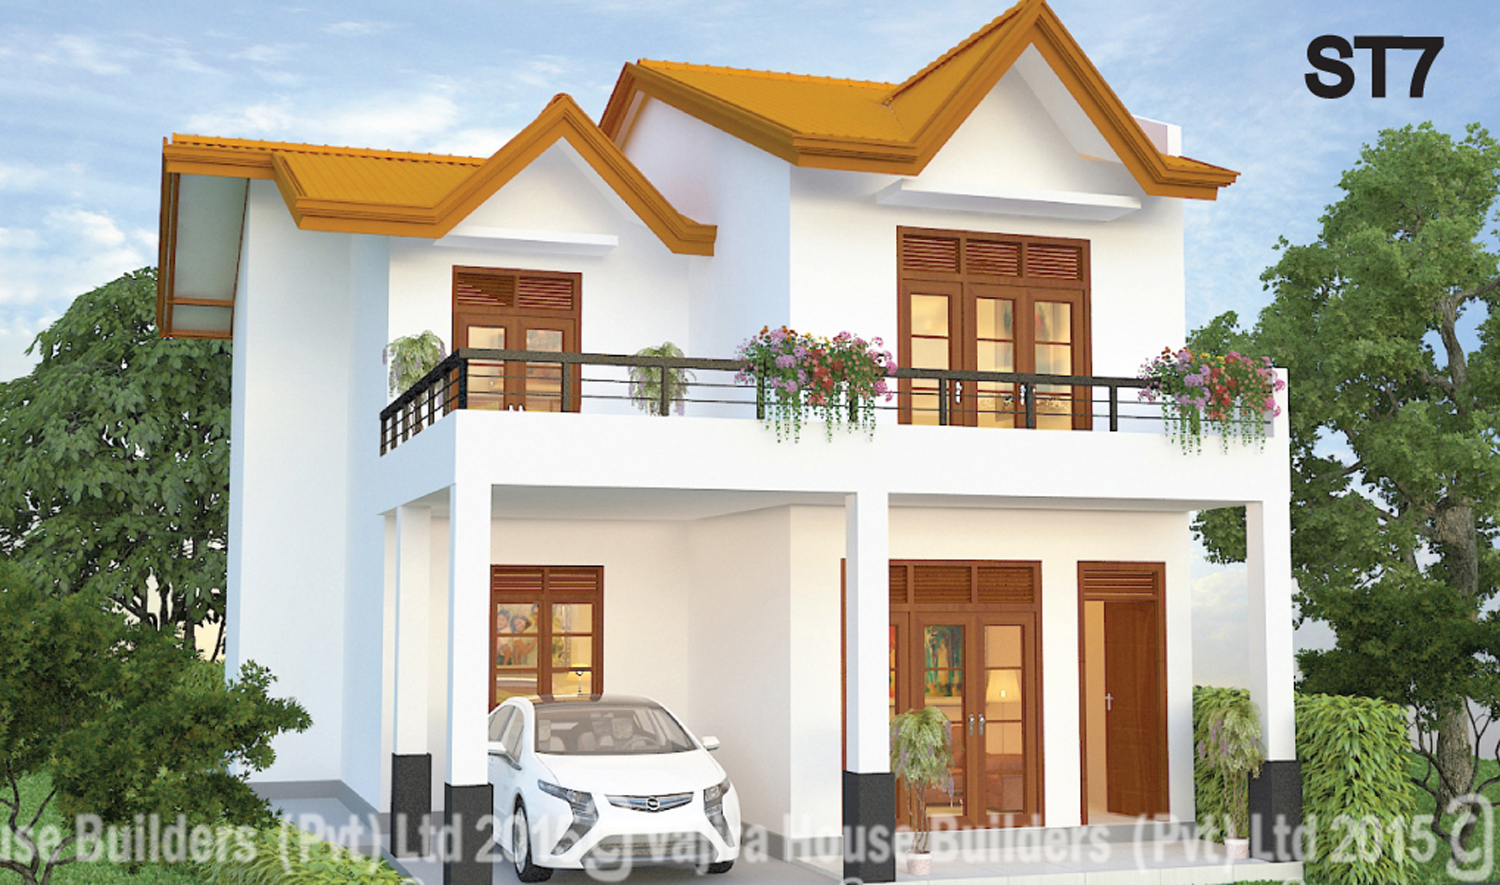 St 7 vajira house builders private limited best for Home design in sri lanka